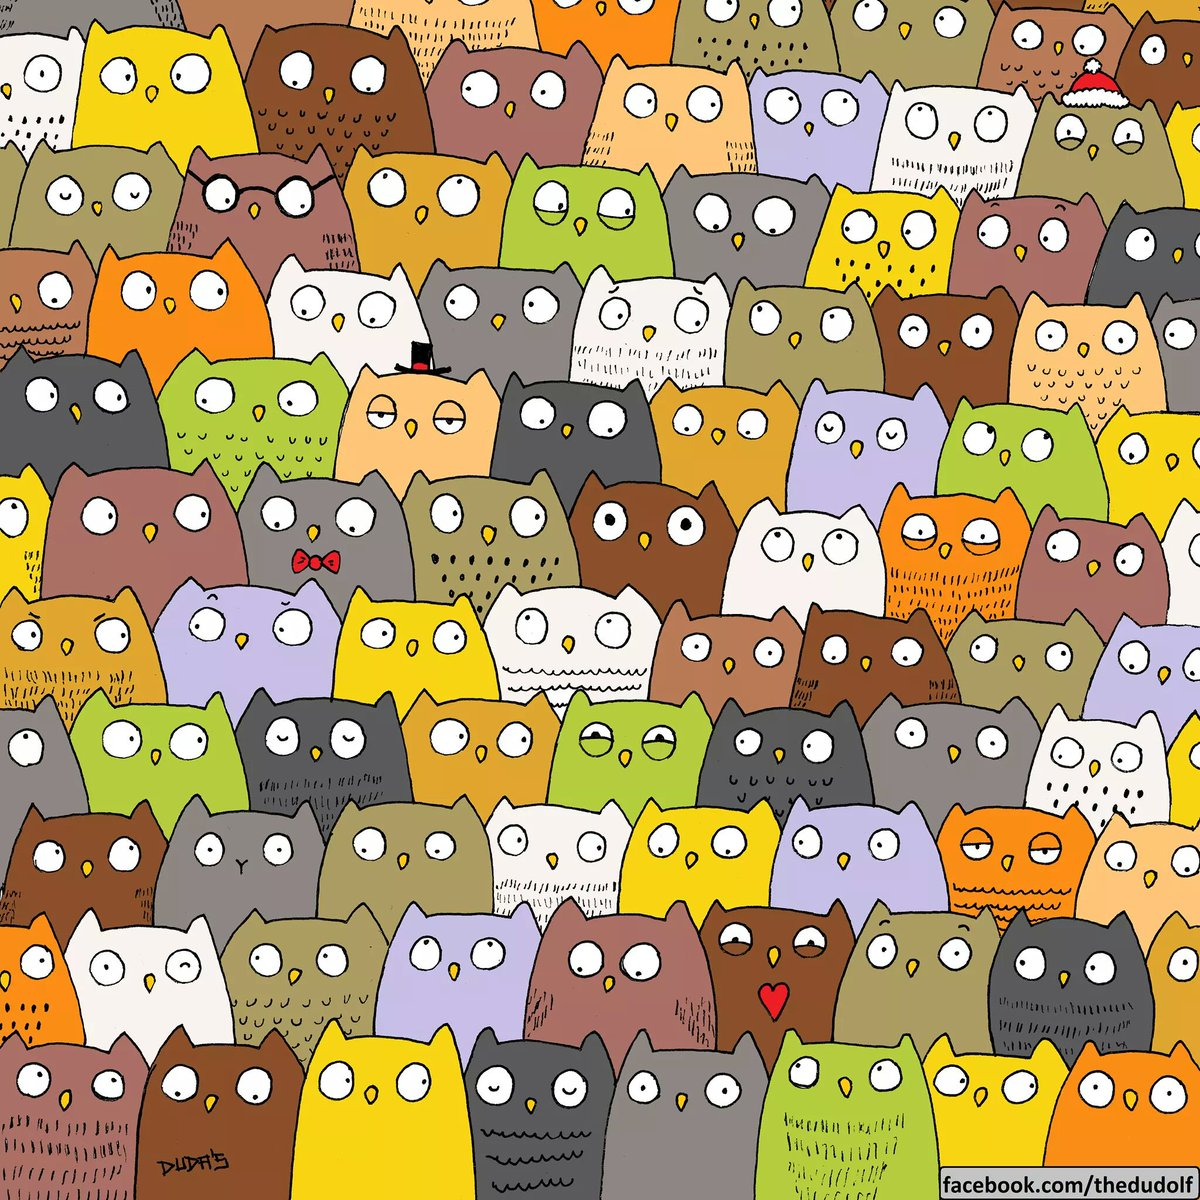 """Find the panda"" was easy, but this one is a bit tricky.  RT if you found the cat!"